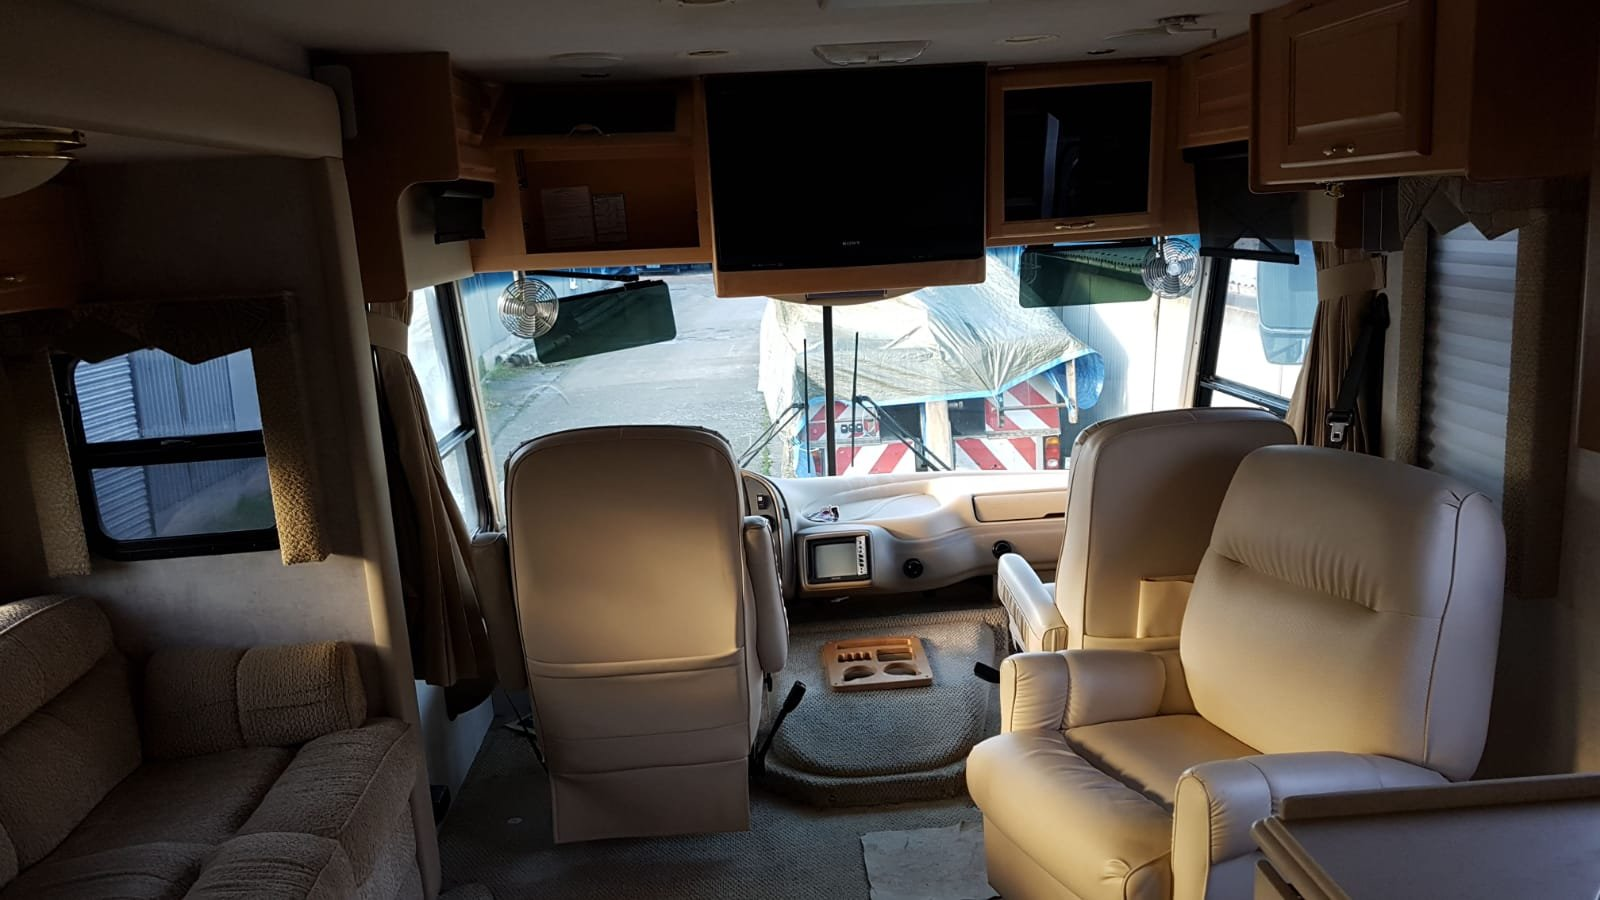 2005 seabreeze motorhome For Sale (picture 3 of 6)